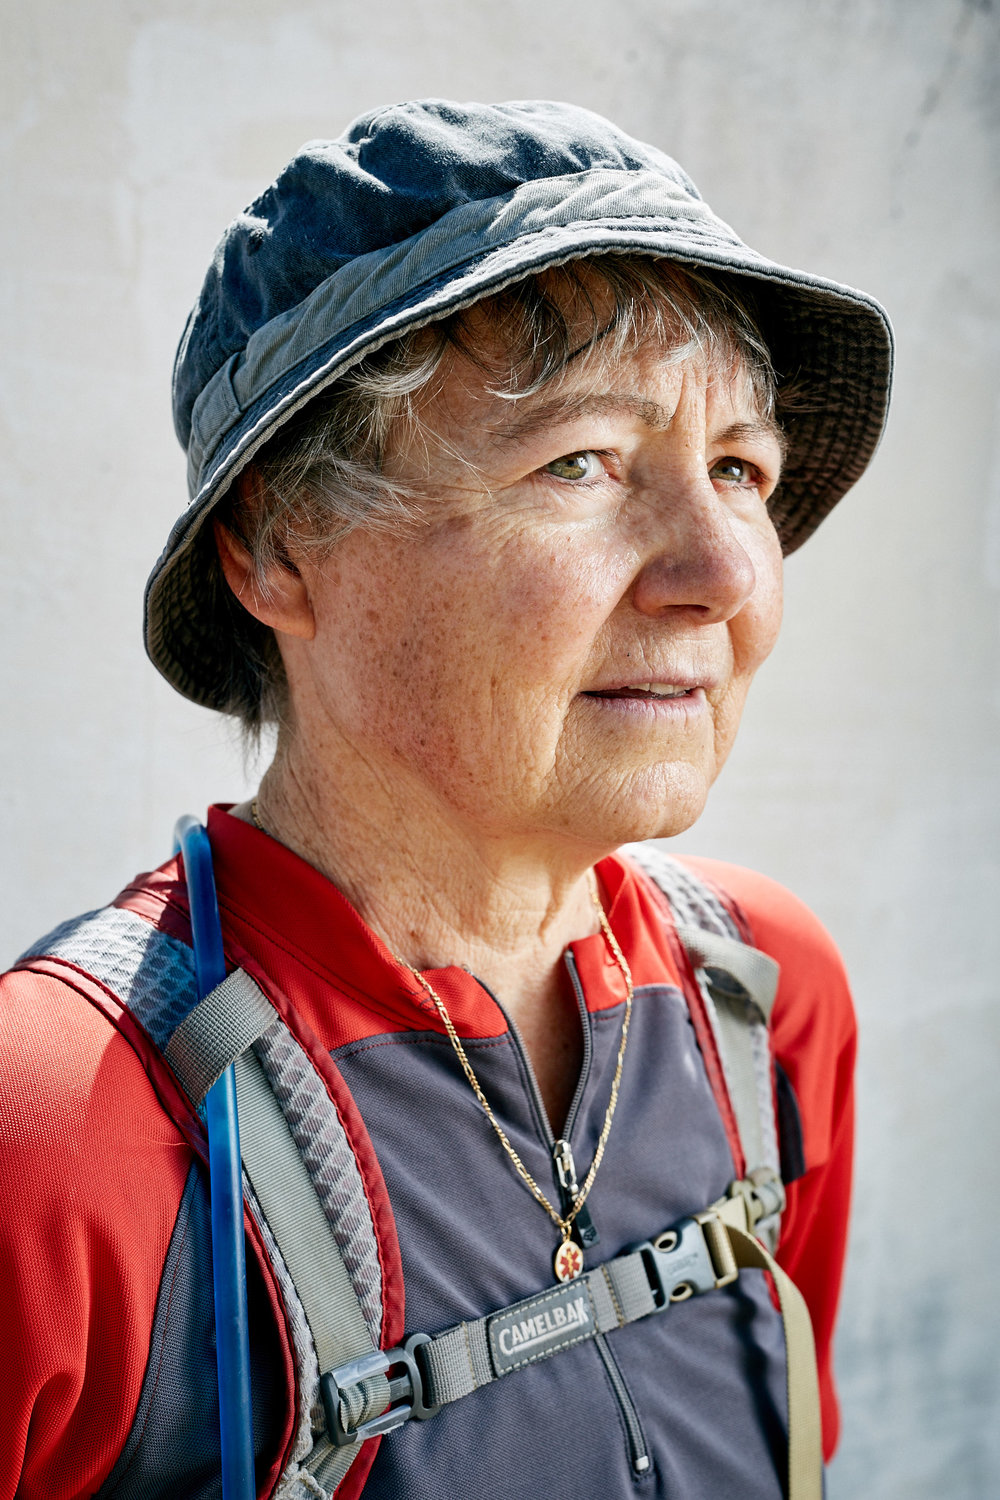 Portraits of Pilgrim's on The Camino Way, nr. Leon, Spain. July 2016.